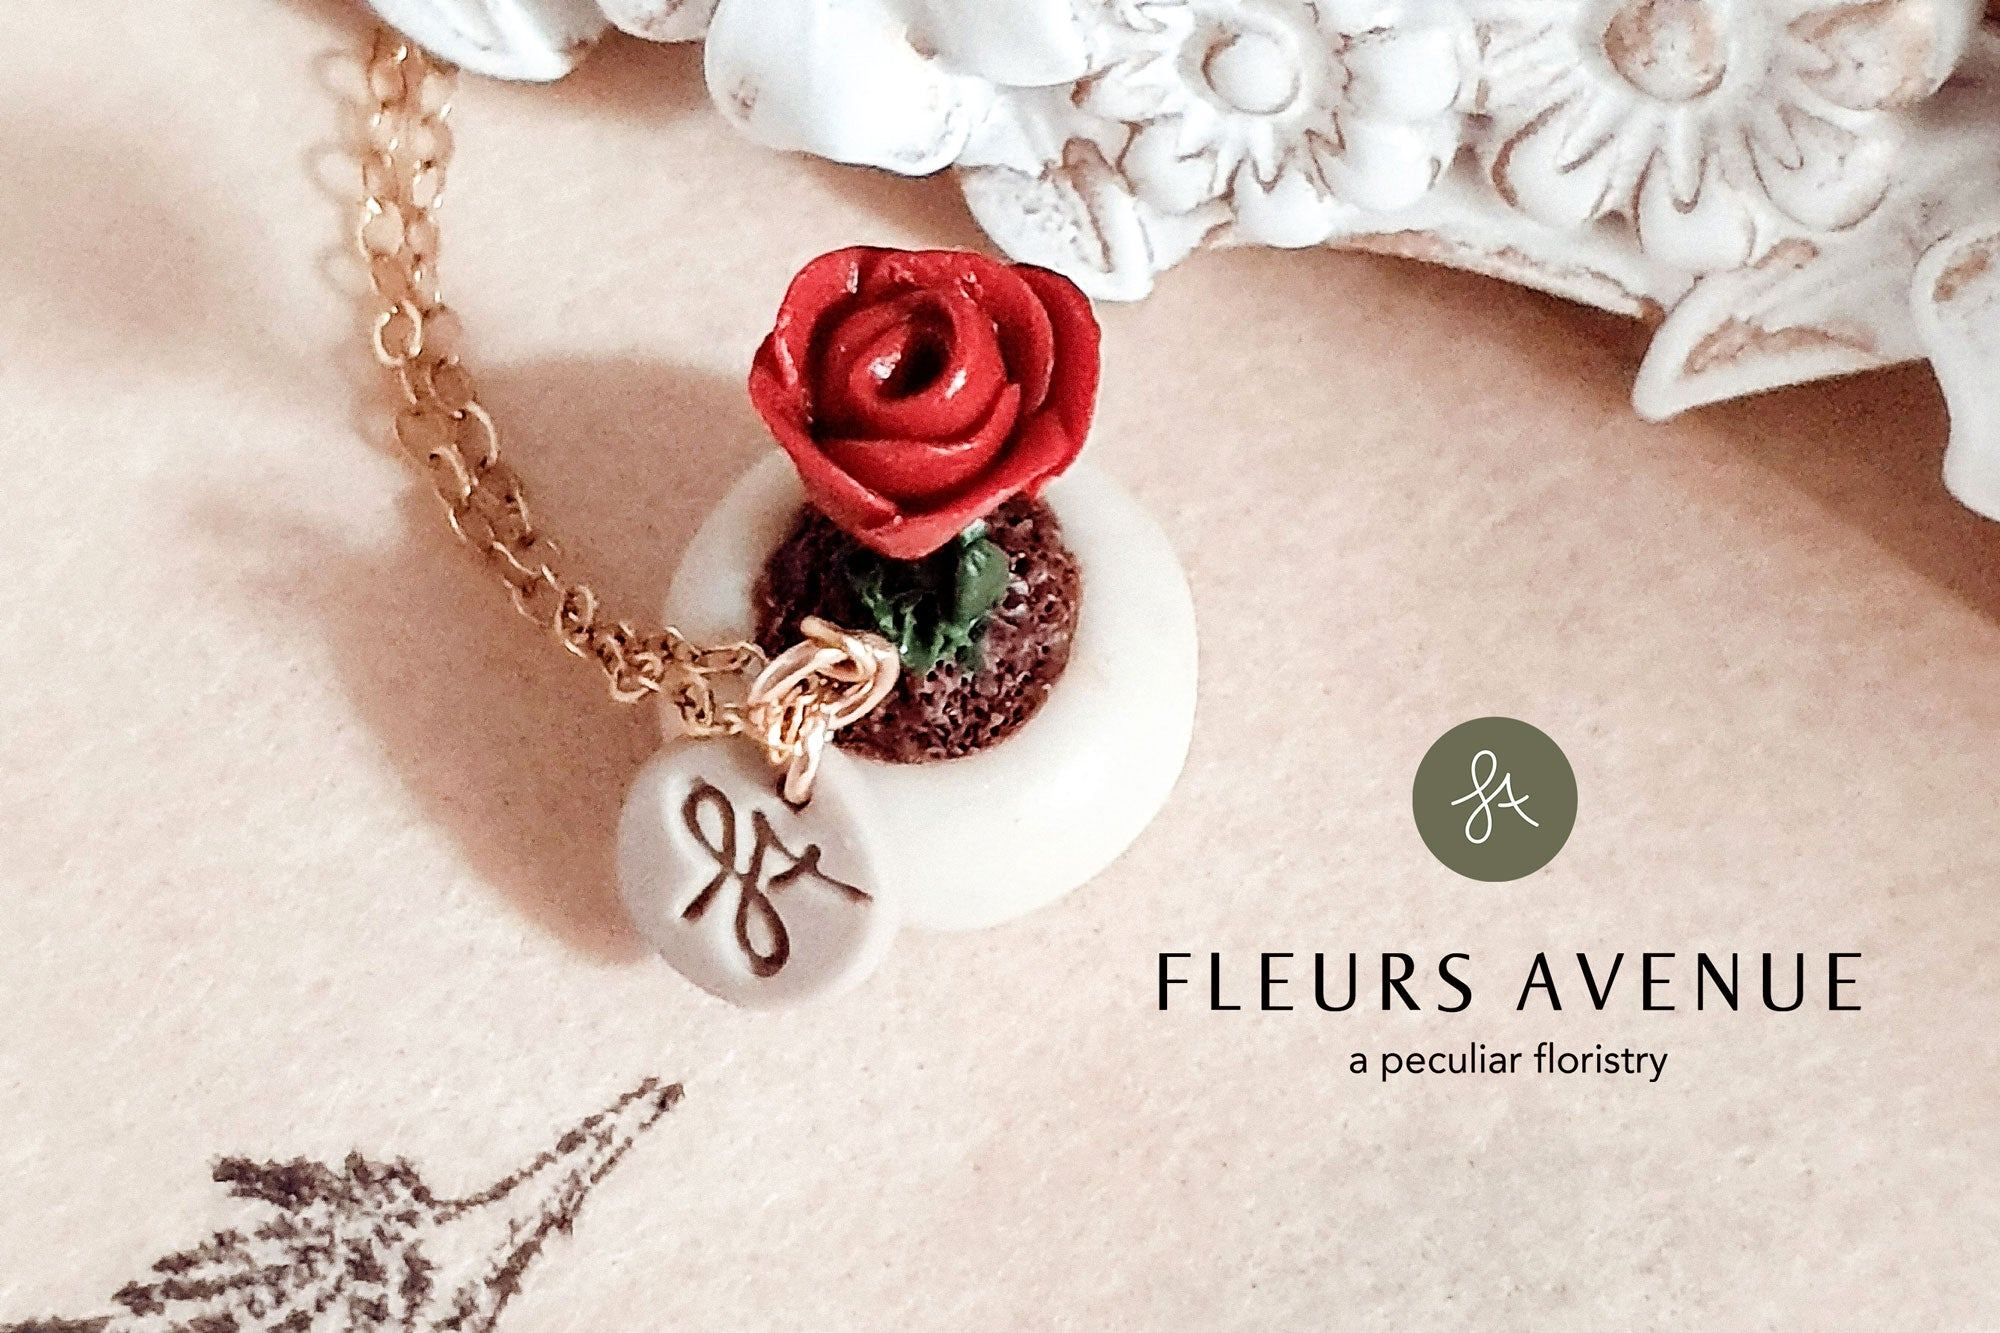 Fleurs Avenue nature-inspired red rose plant pot gold-filled necklace for plant lovers. Perfect gift for flower lovers, plant lovers. 100% pollen free jewellery. Tagged.